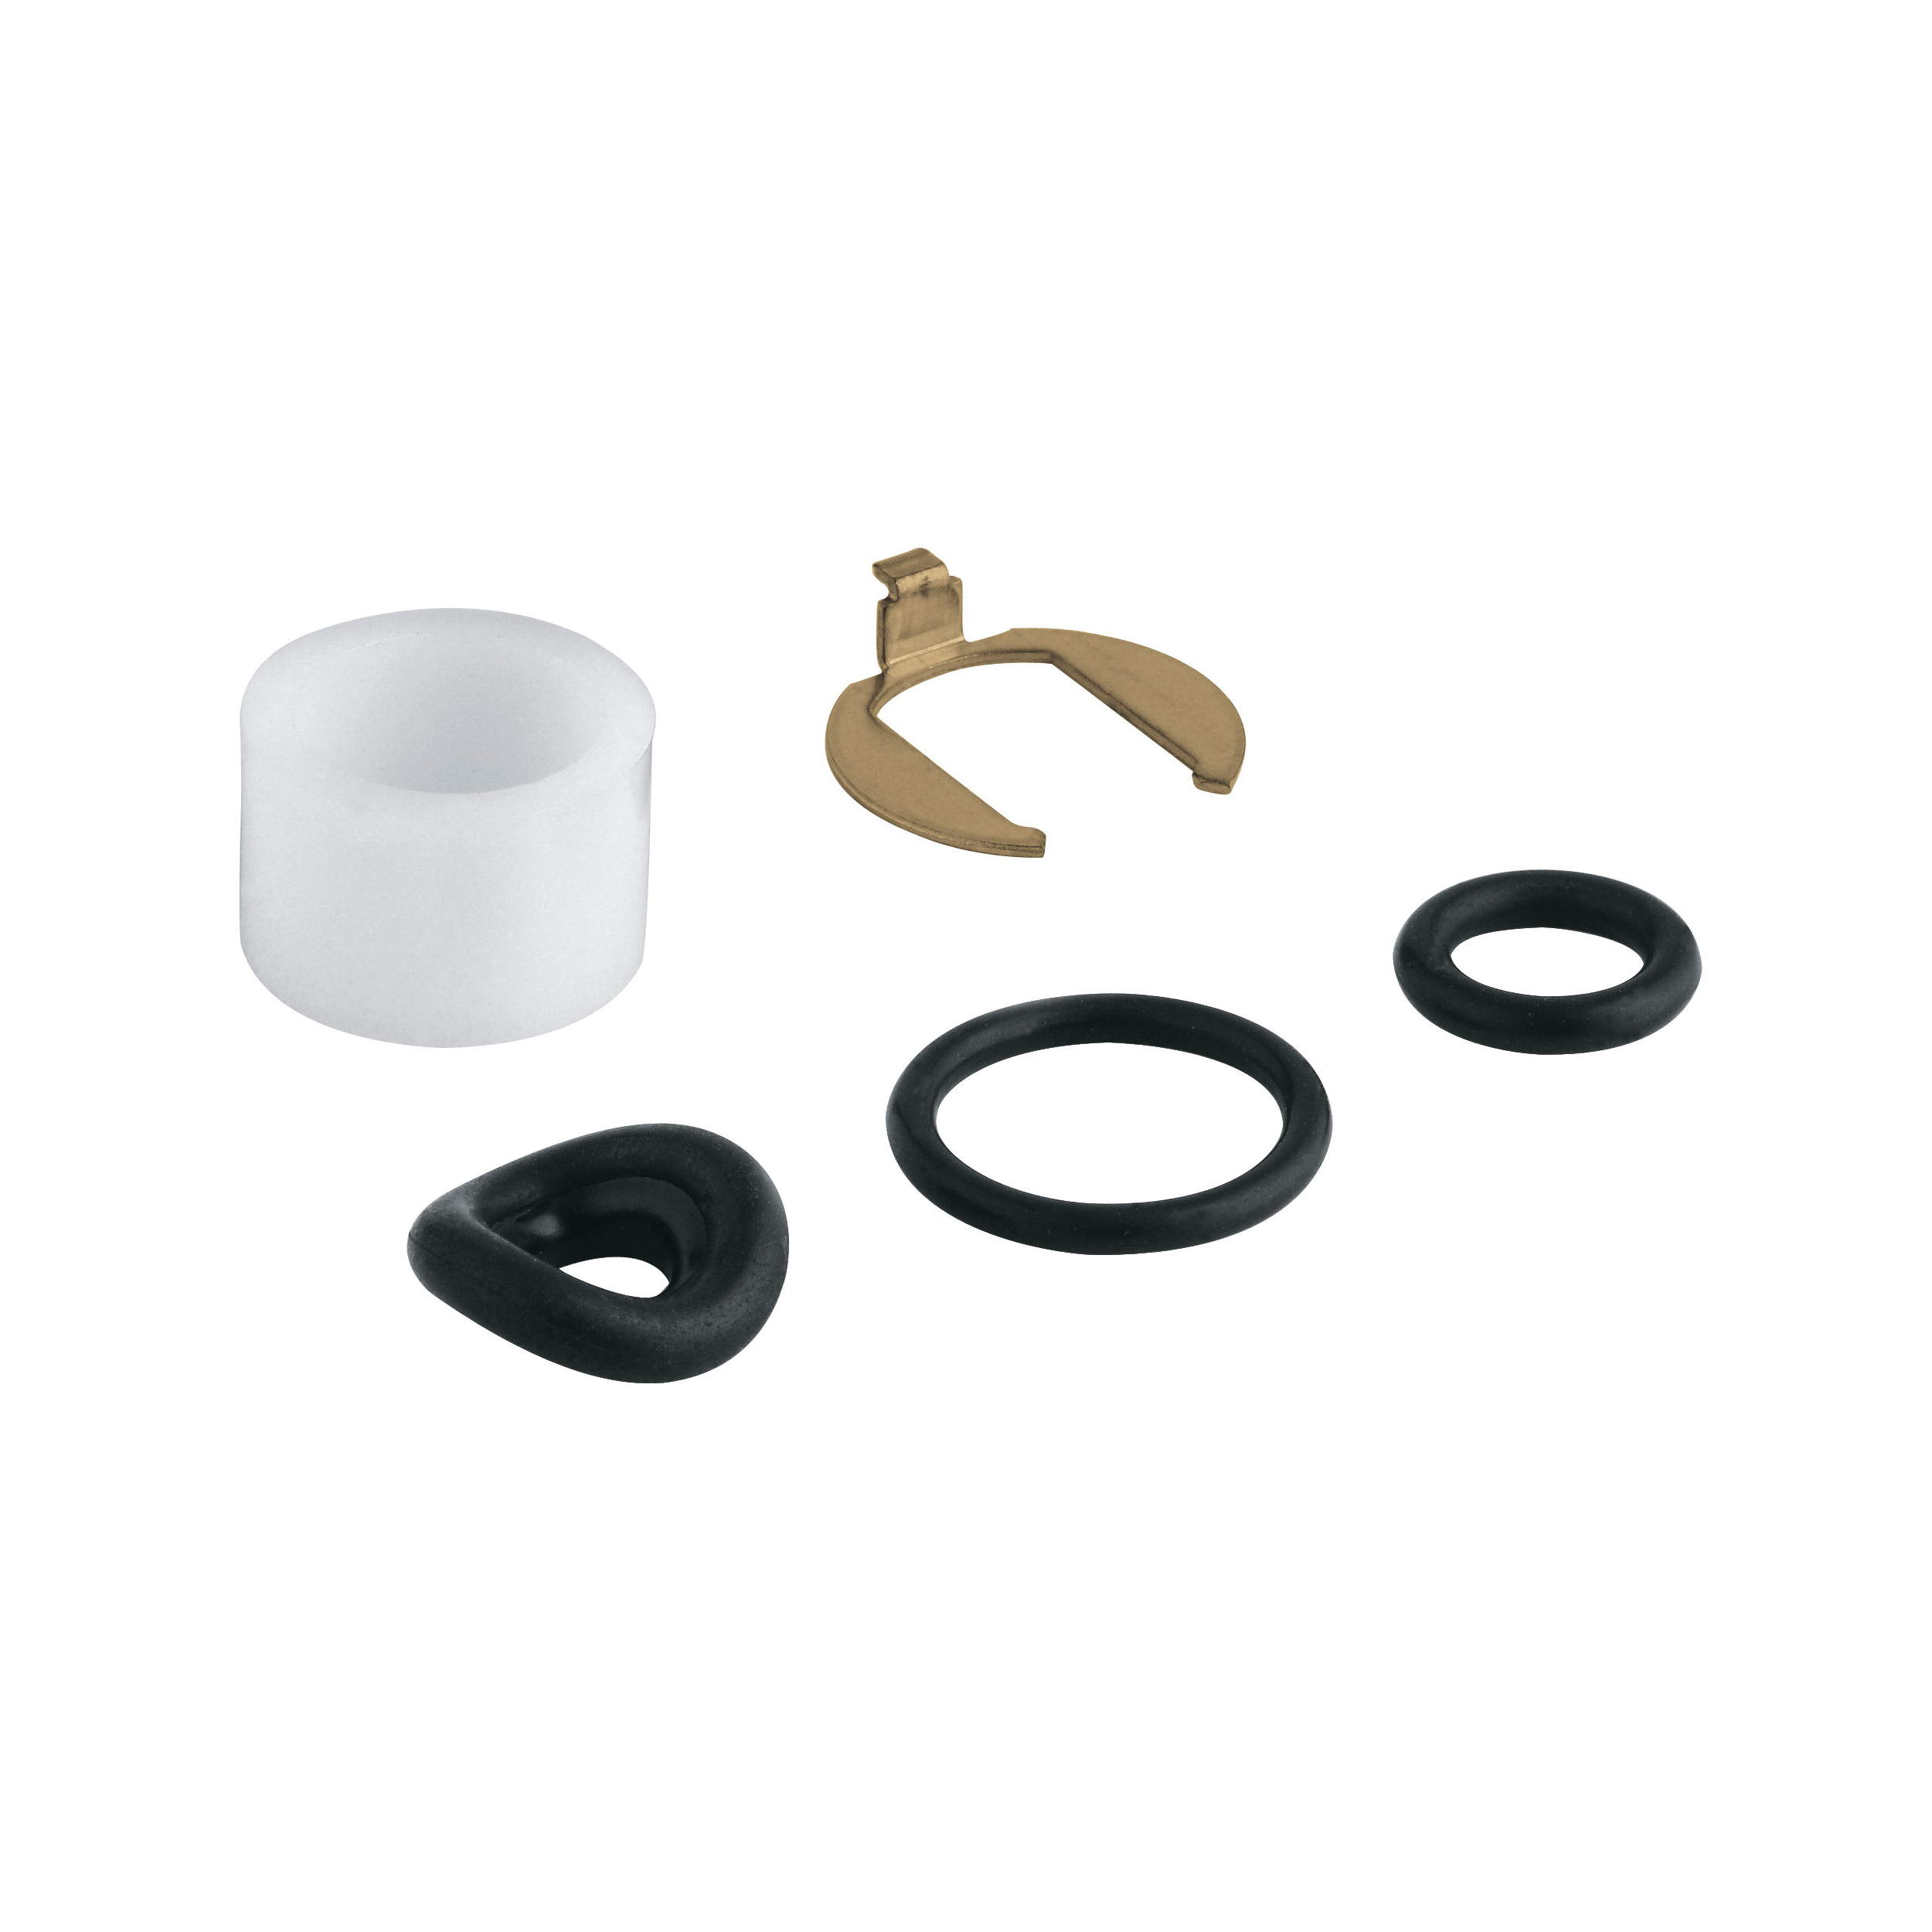 GROHE 46090000 Seal Kit, For Use With 07000 1-Handle Cartridge, Import